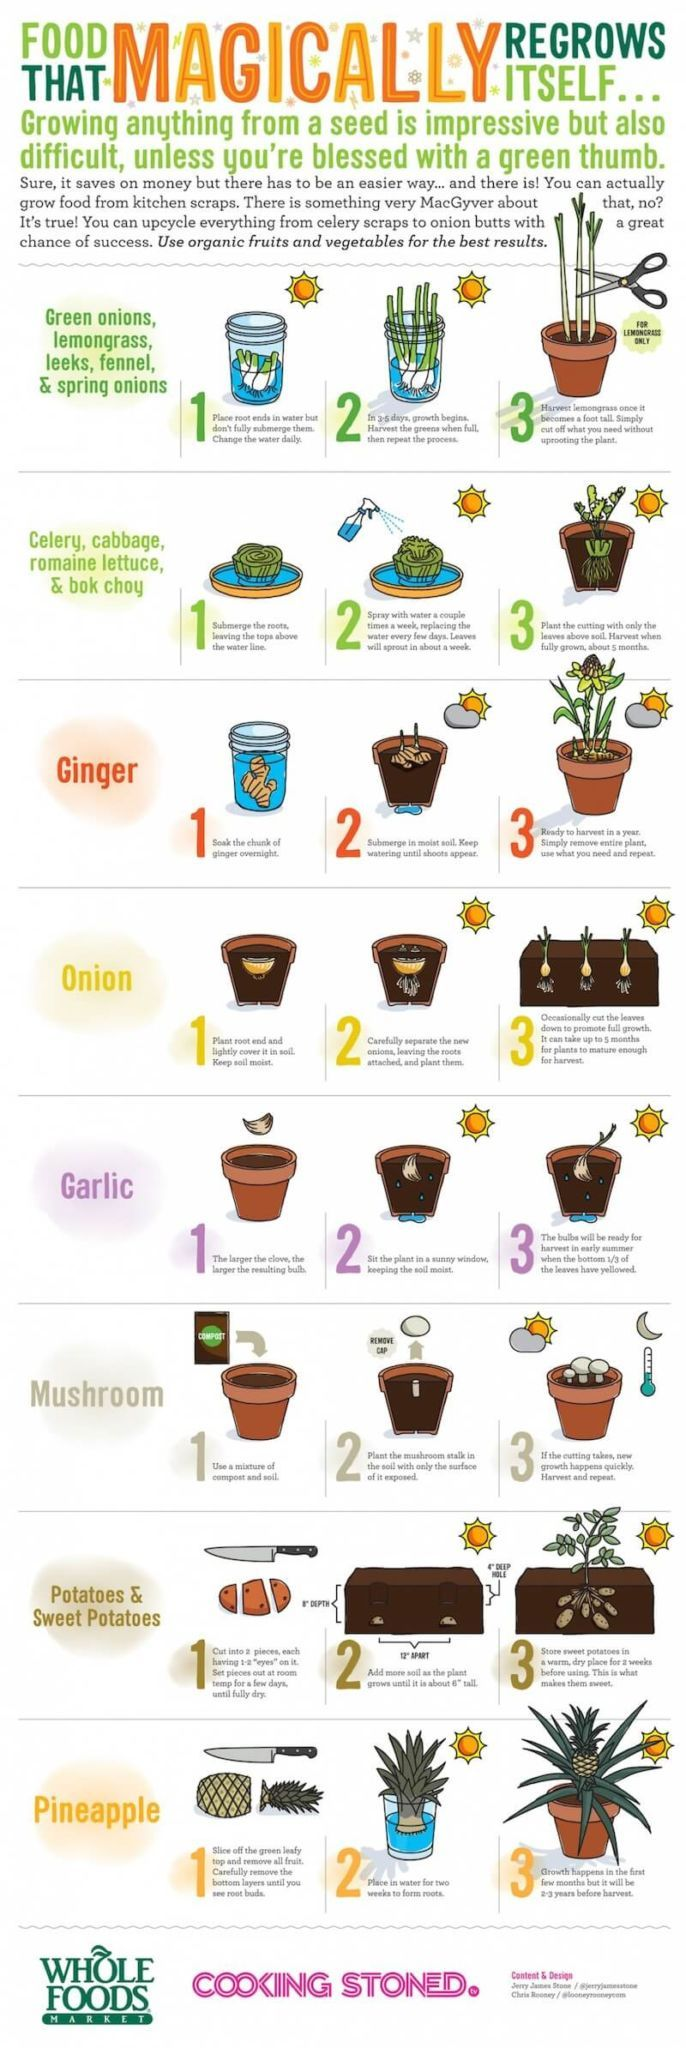 85 best Frugal Gardening images on Pinterest   Gardens, Plants and ...